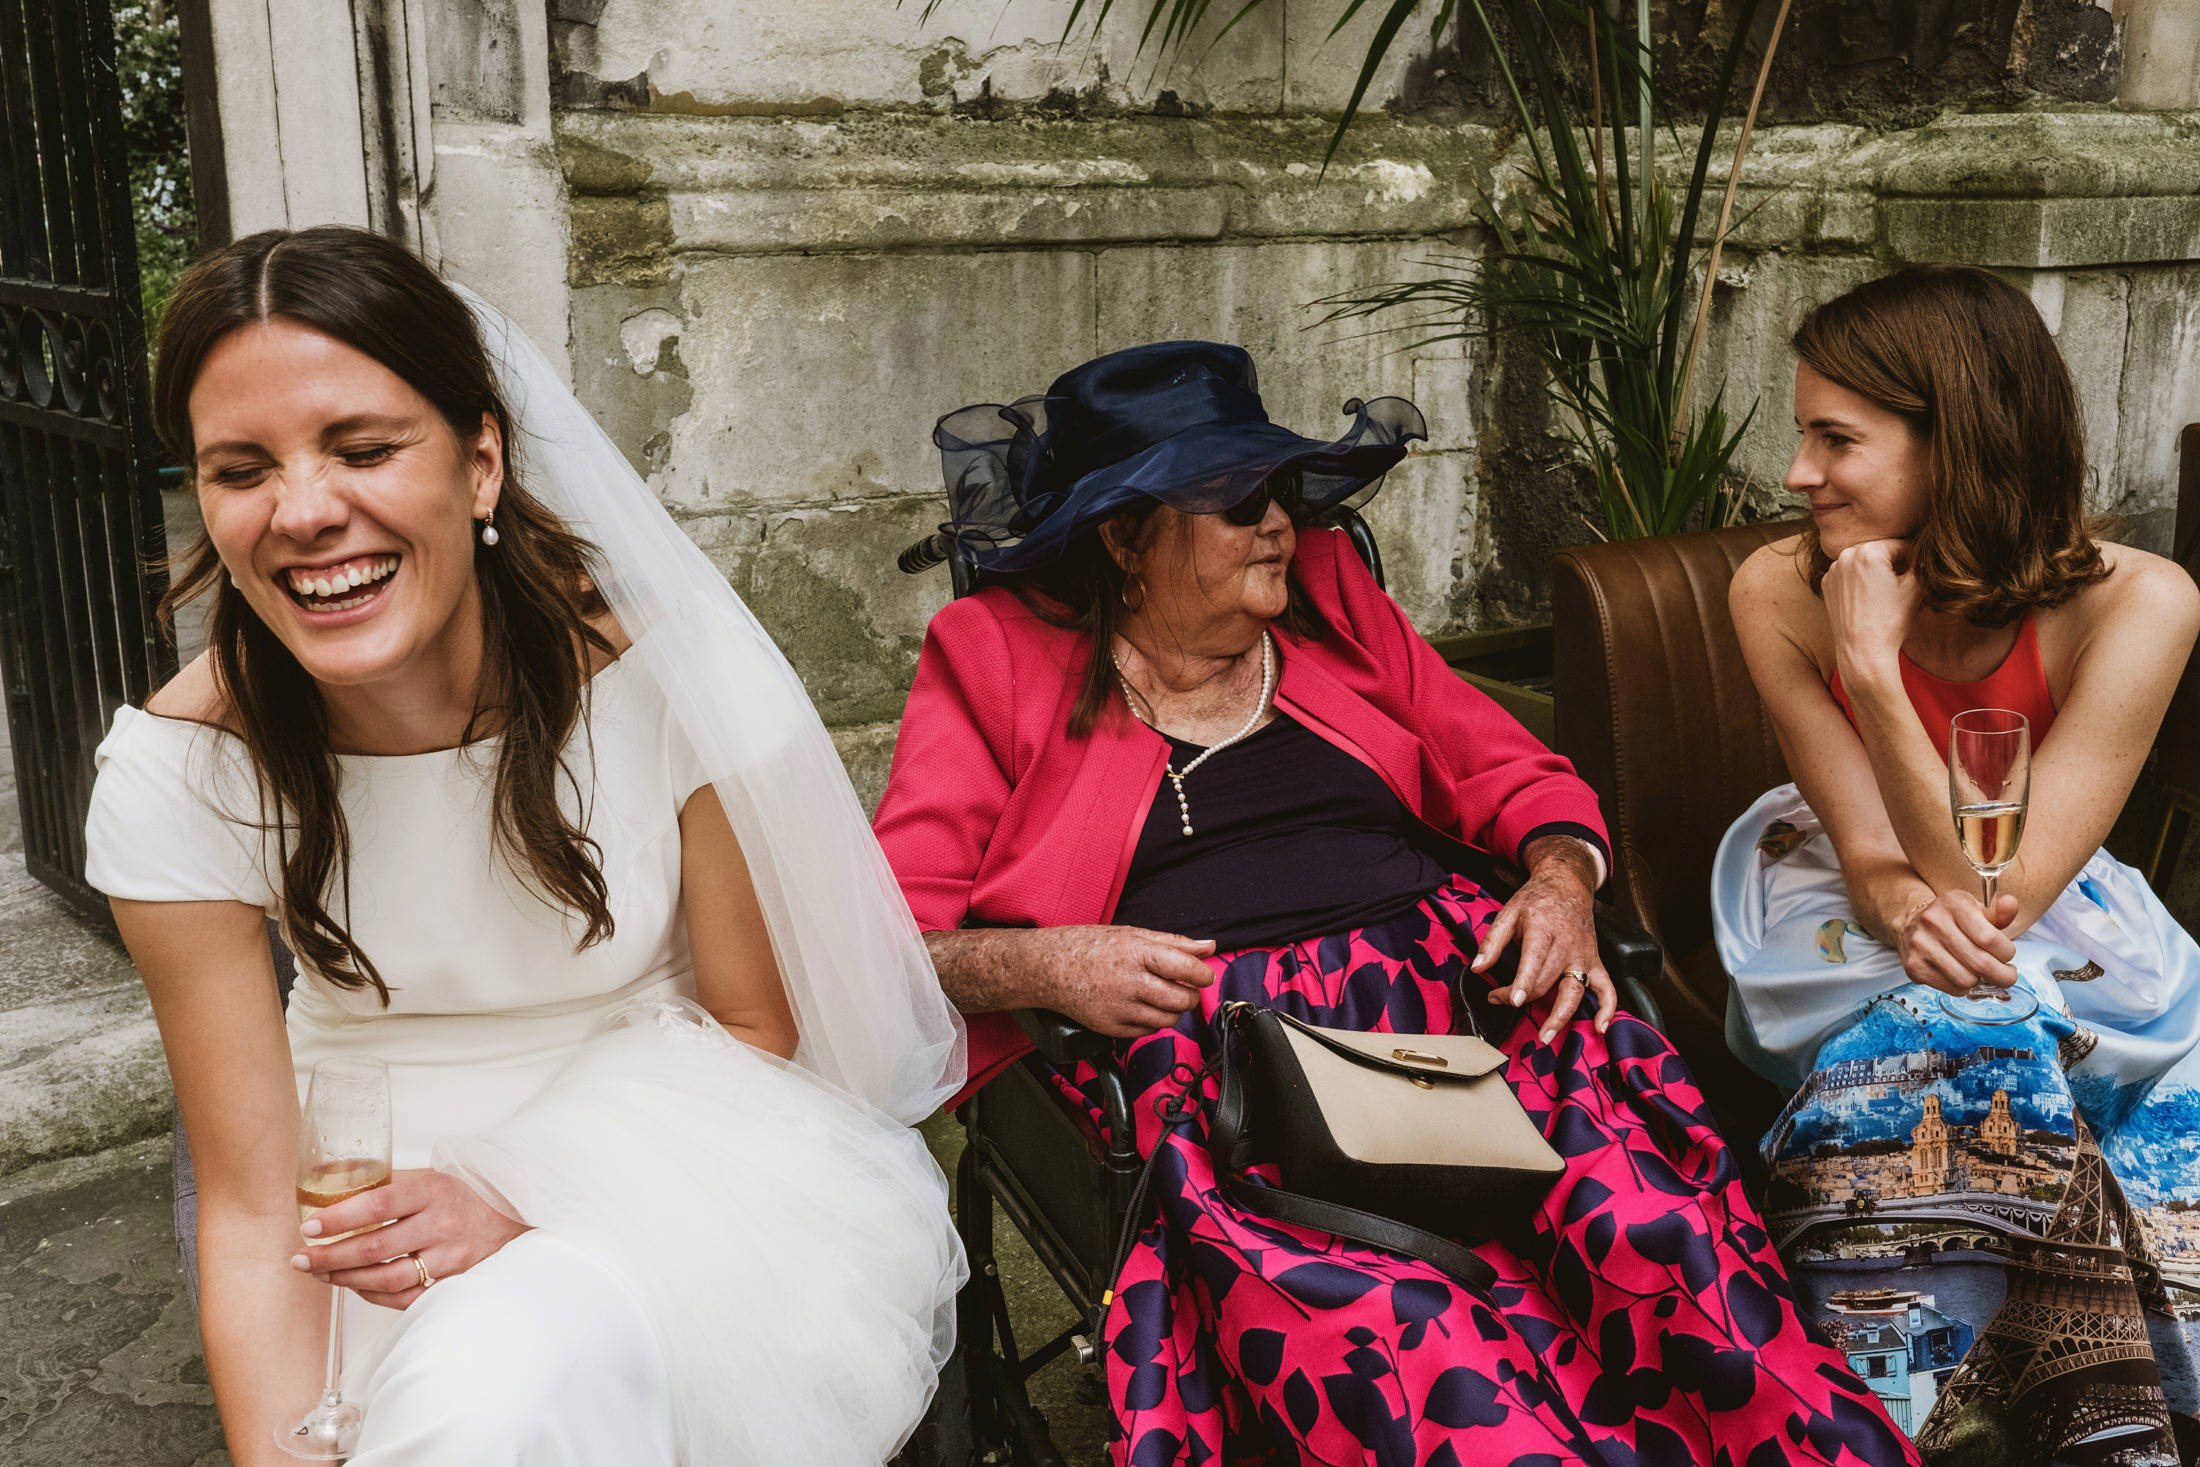 (Left) a bride sits laughing with someone outside of the frame. To her left two seated guests enjoy a conversation